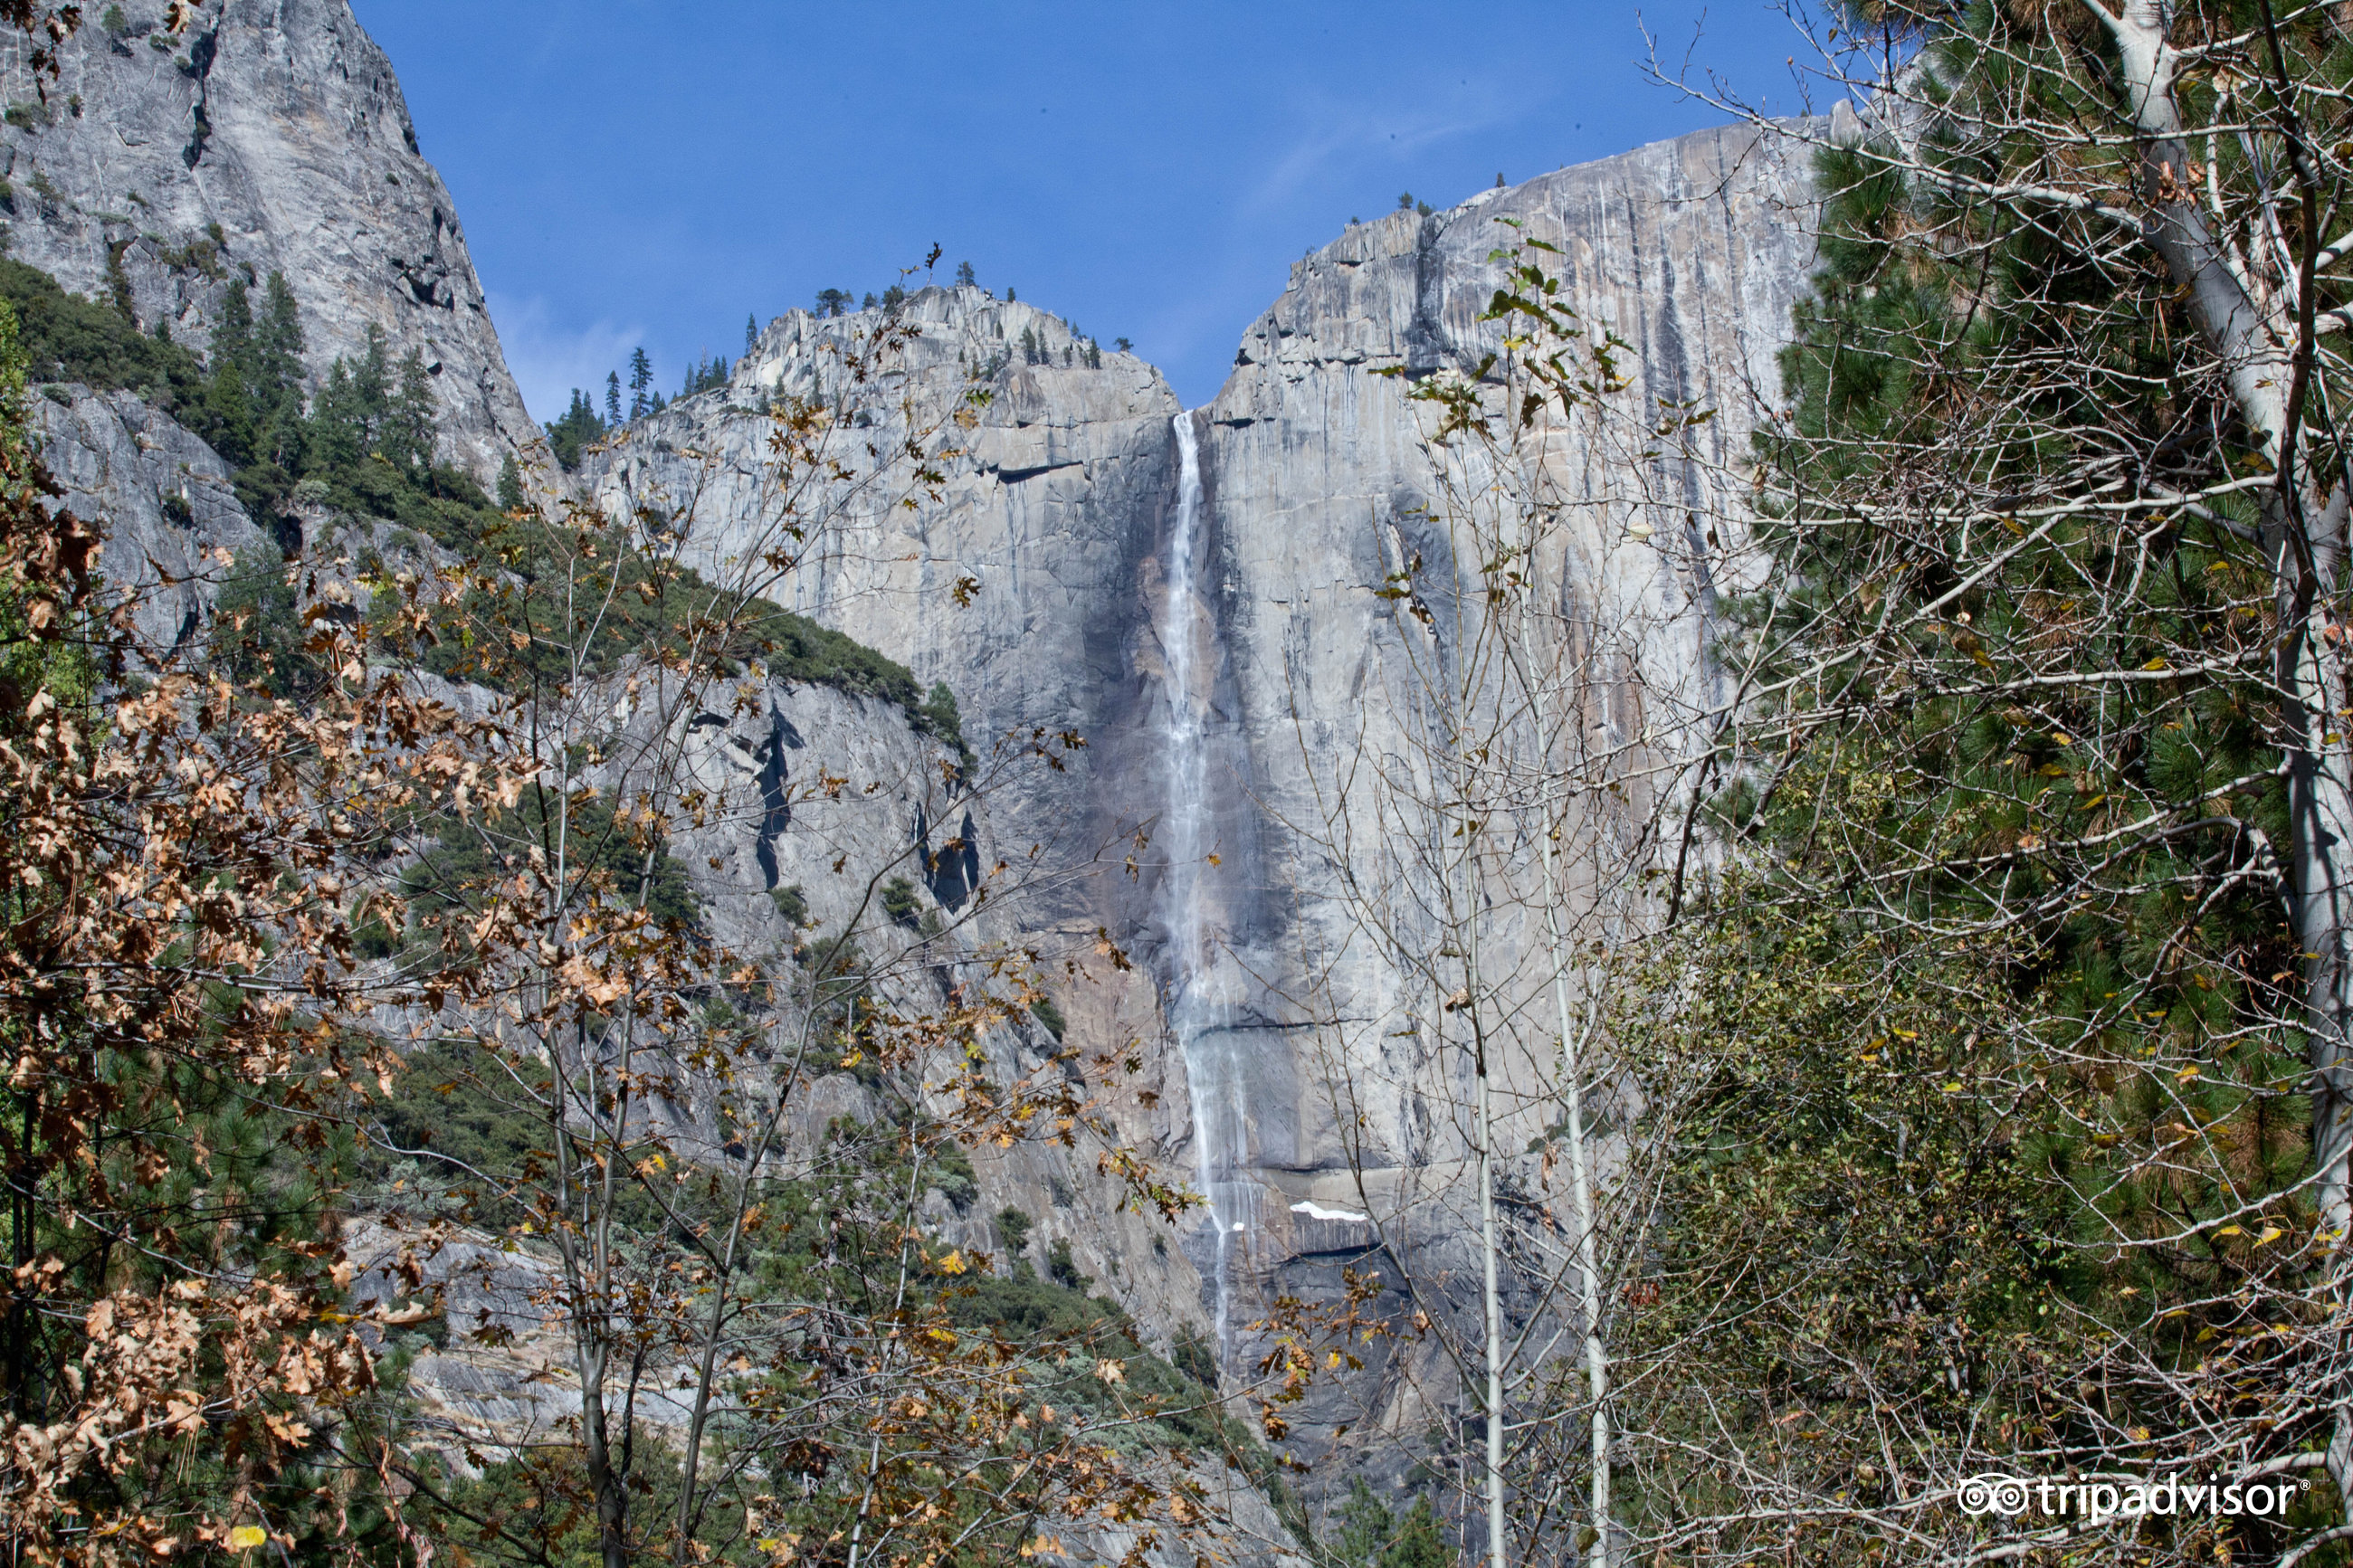 yosemite national park milfs dating site Structure and origins of glacial polish on yosemite's rocks geologists investigated glacial polish from yosemite national park to understand how it formed and what it can tell them about how glaciers move.